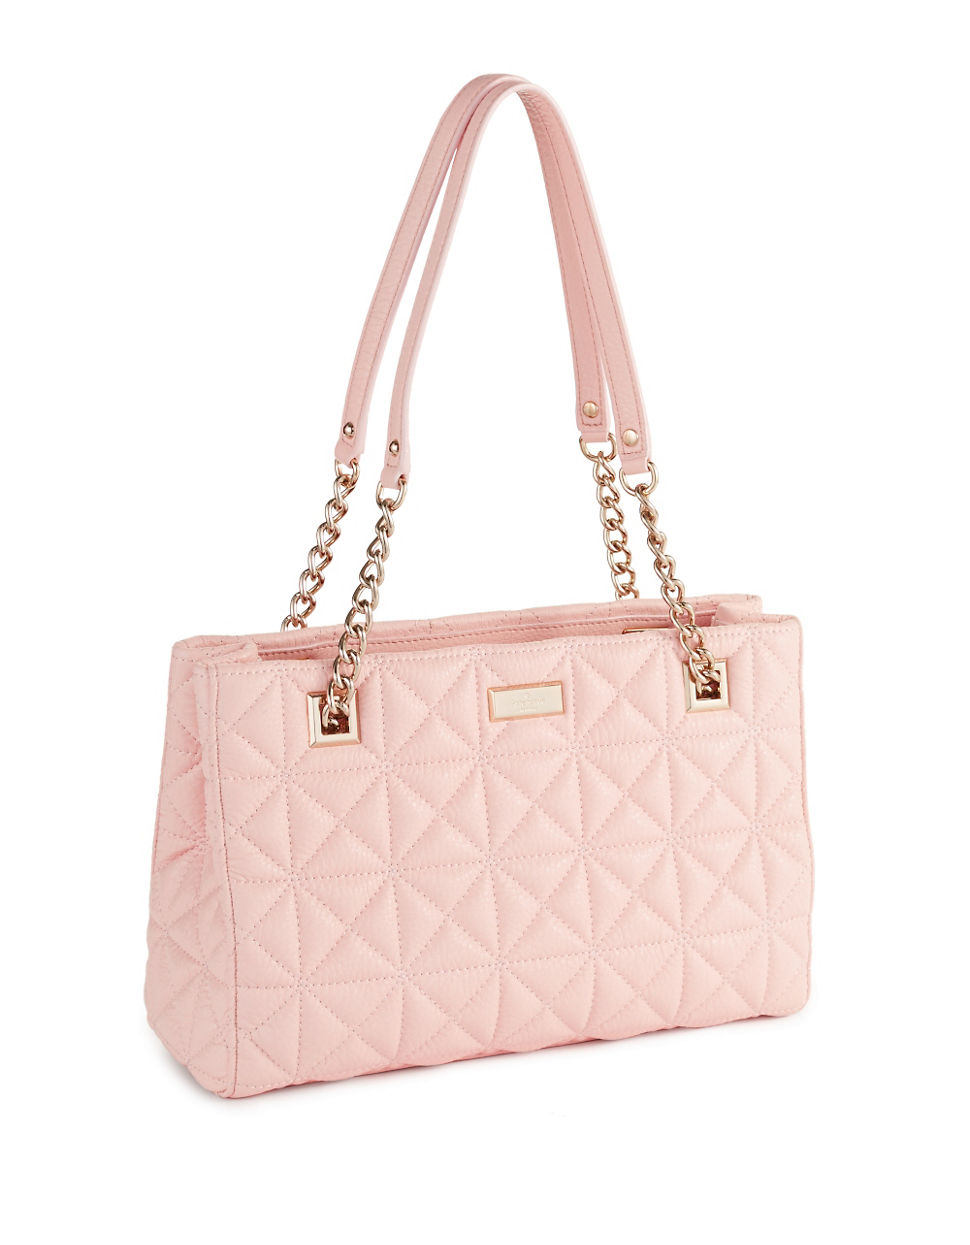 Kate spade new york Sedgewick Place Small Phoebe Quilted Leather ... : quilted kate spade handbag - Adamdwight.com